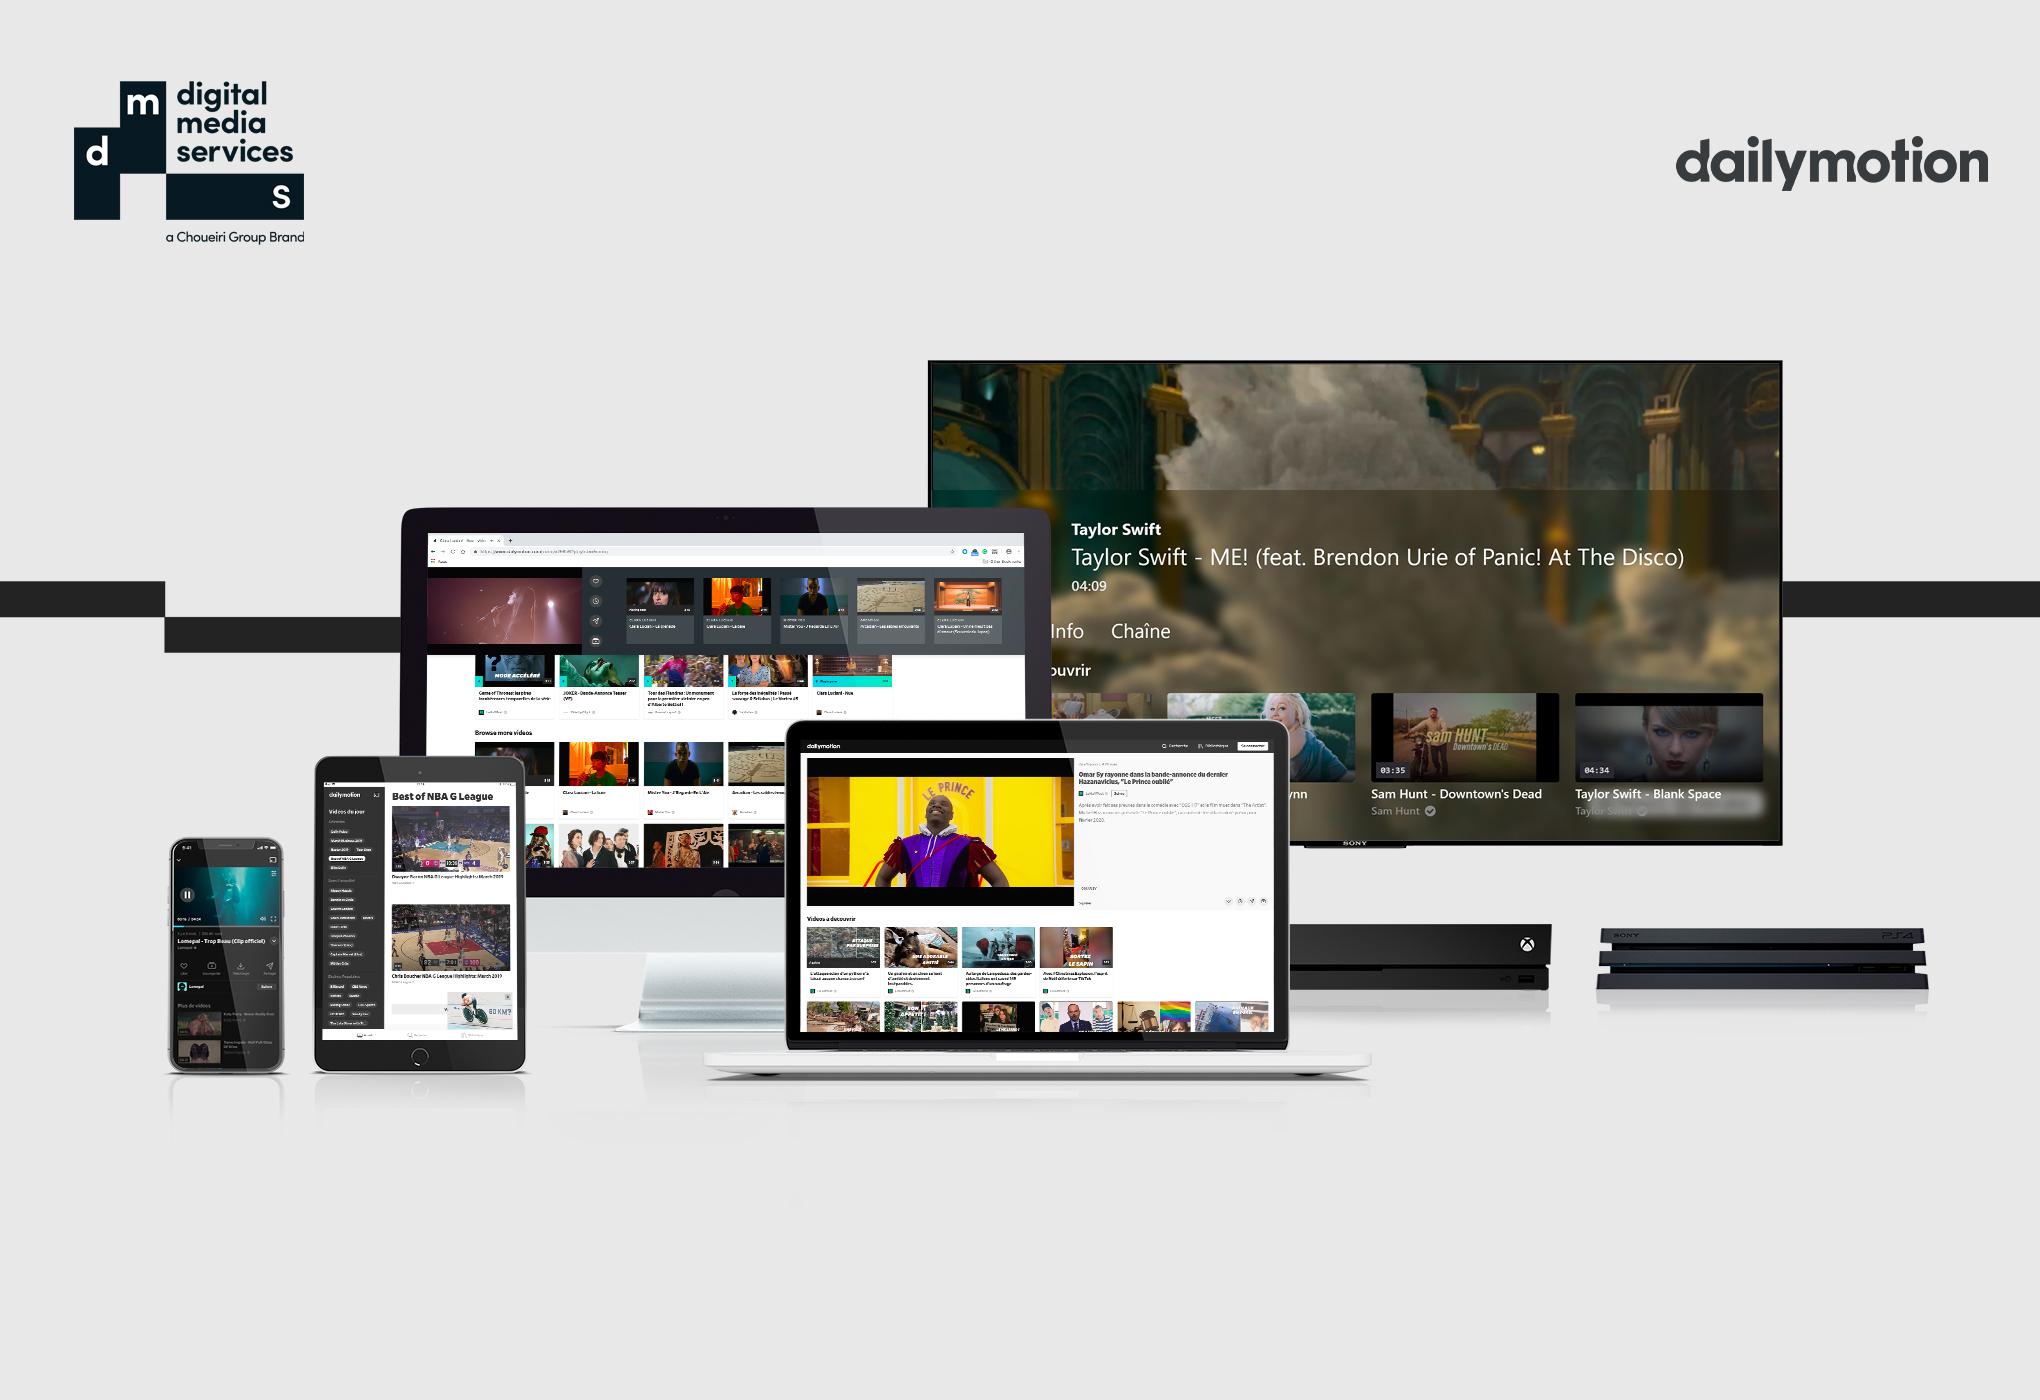 dms-media-partner-dailymotion-launches-powerful-video-solution-at-no-extra-cost-for-publishers-and-broadcasters